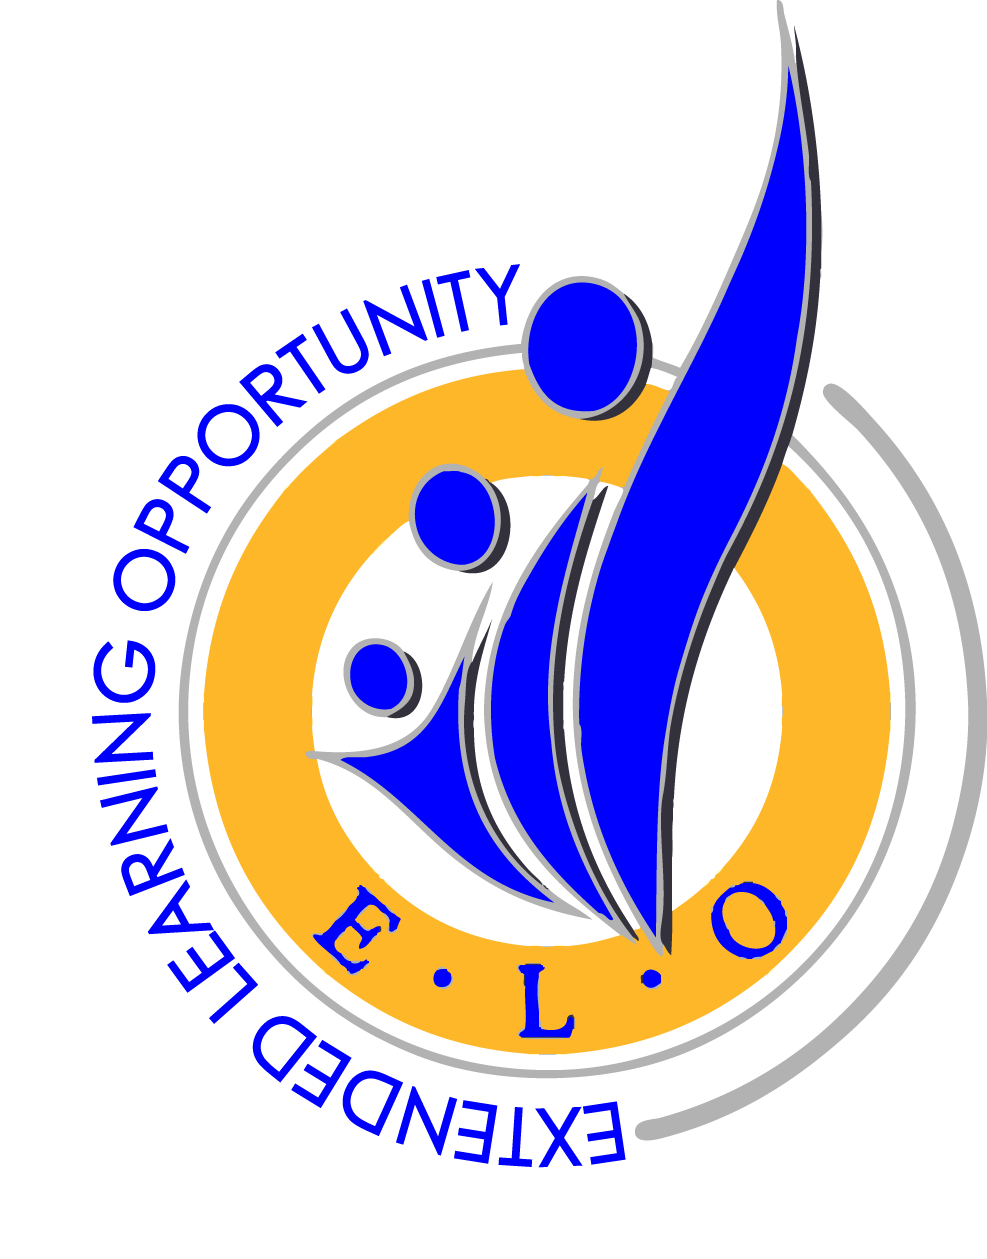 ELO logo blue and yellow